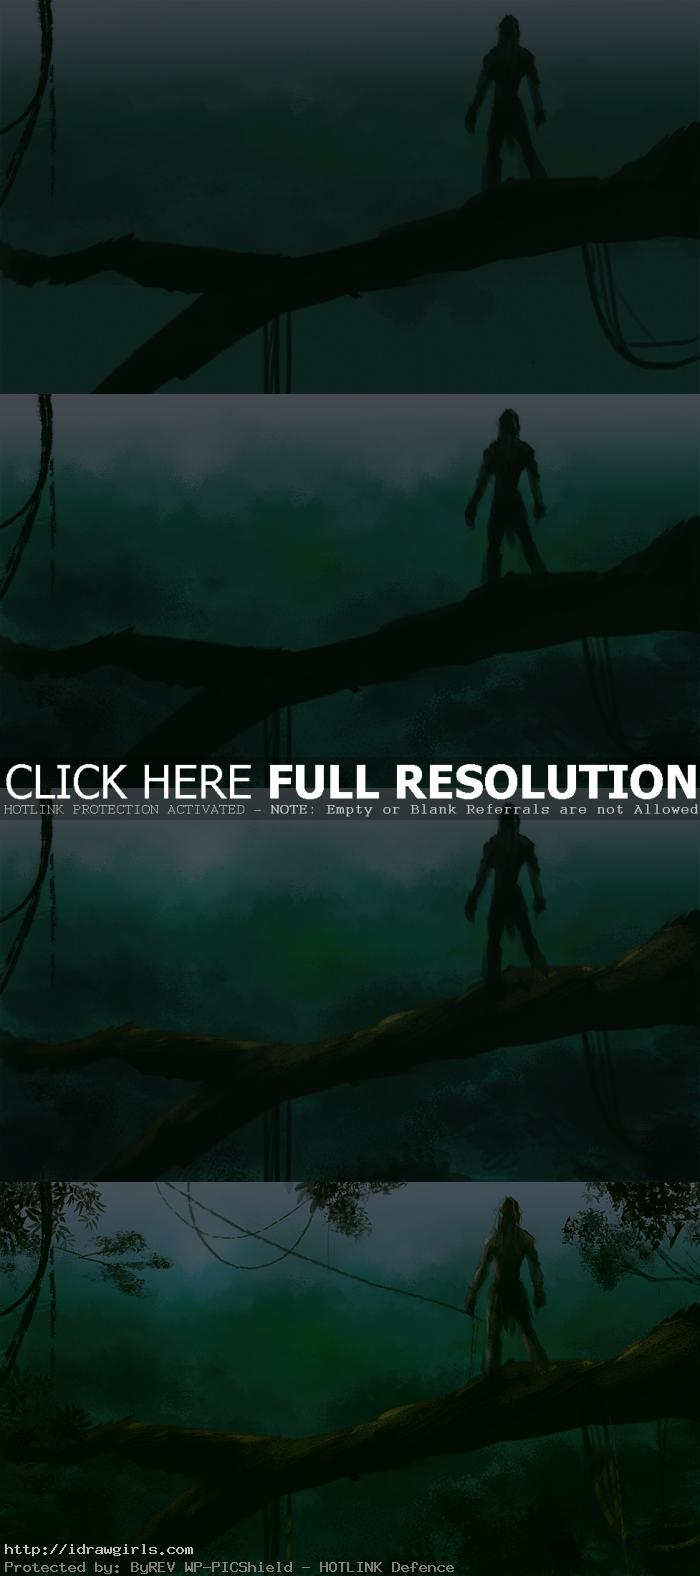 digital painting tutorial tarzan jungle